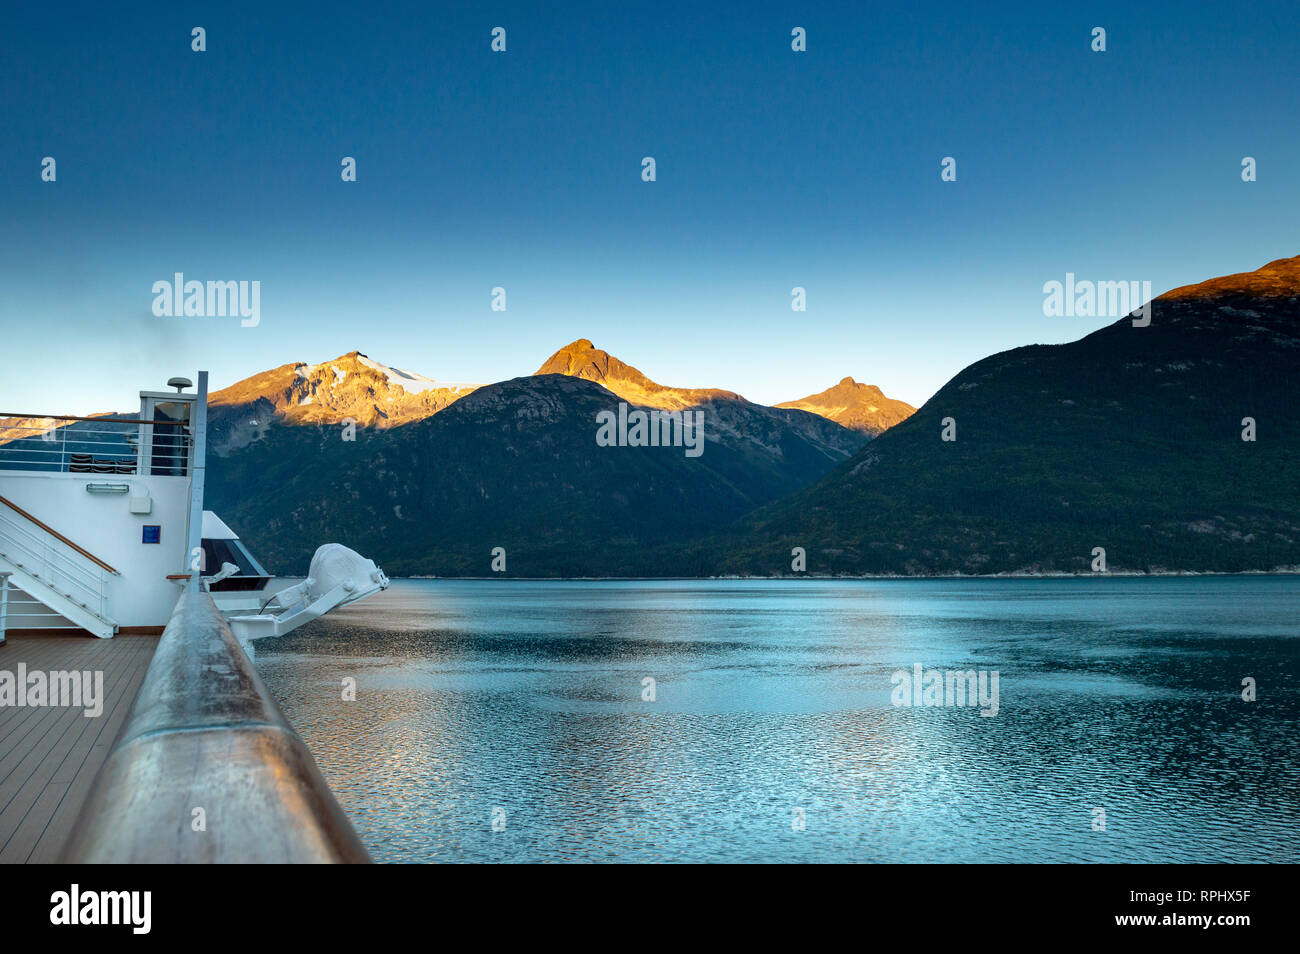 September 15, 2018 - Skagway, AK: Sunrise alpenglow light on mountains and view of Taiya Inlet from The Volendam cruise ship Sports Deck while arrivin - Stock Image